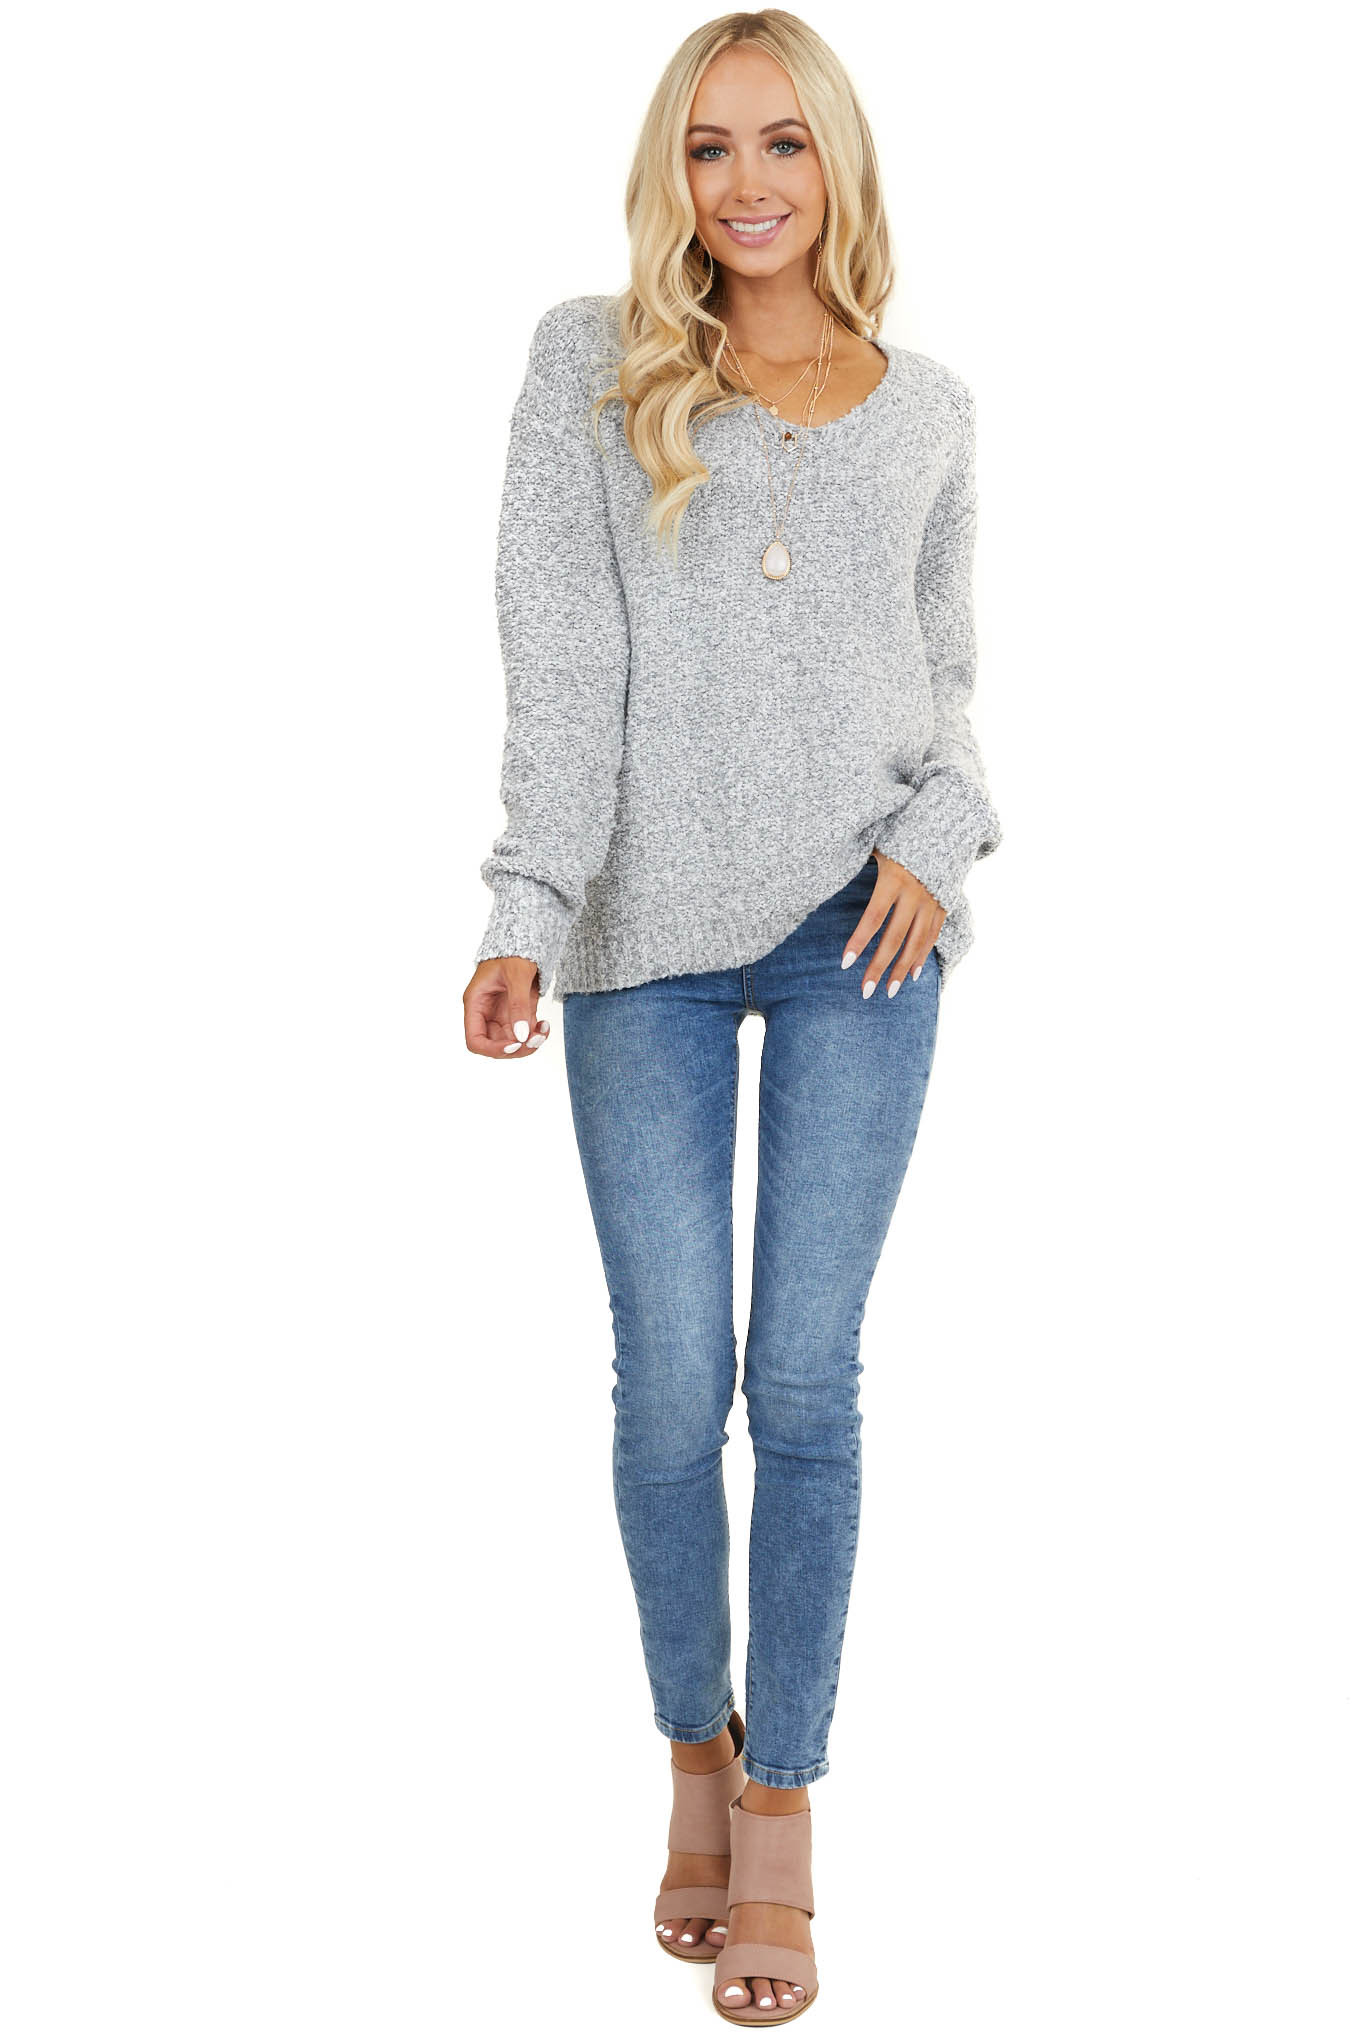 Heathered Dove Grey V Neckline Sweater with Long Sleeves